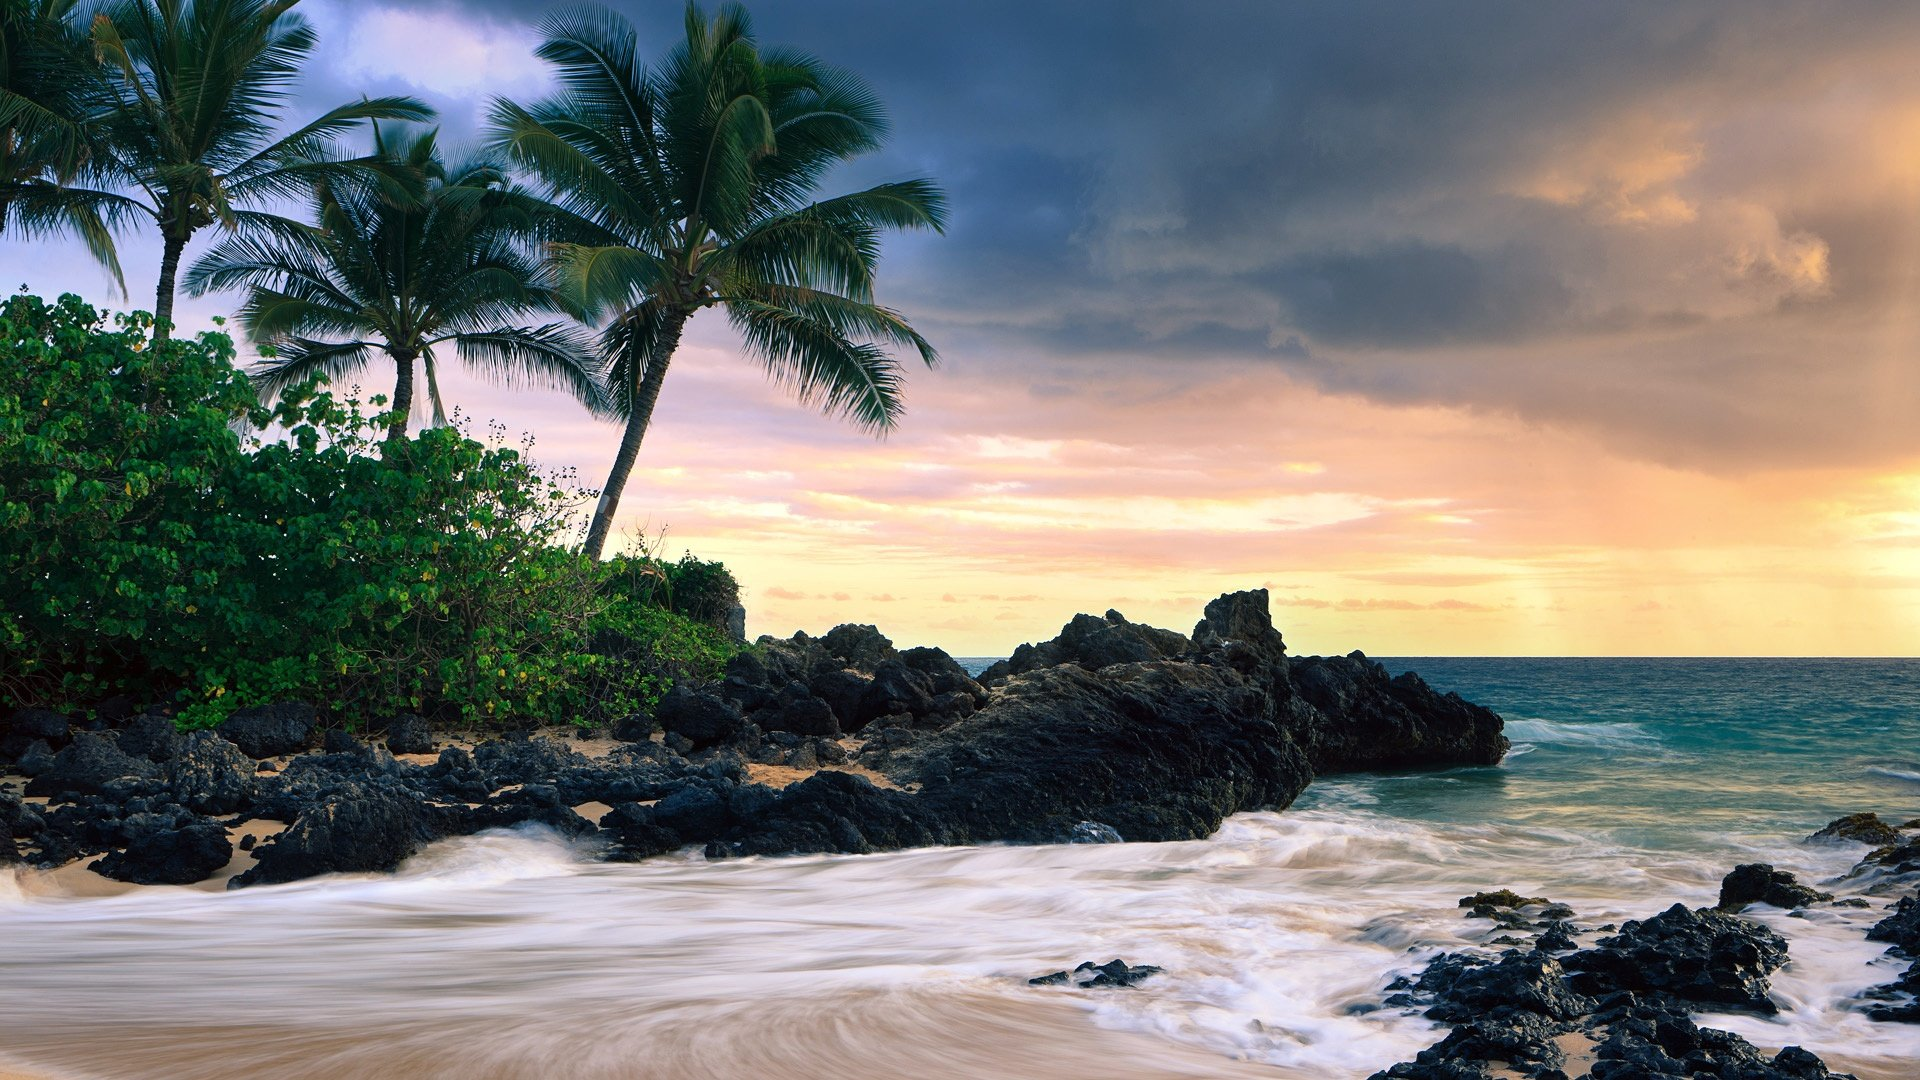 Tropical Beach HD Wallpapers 1920x1080